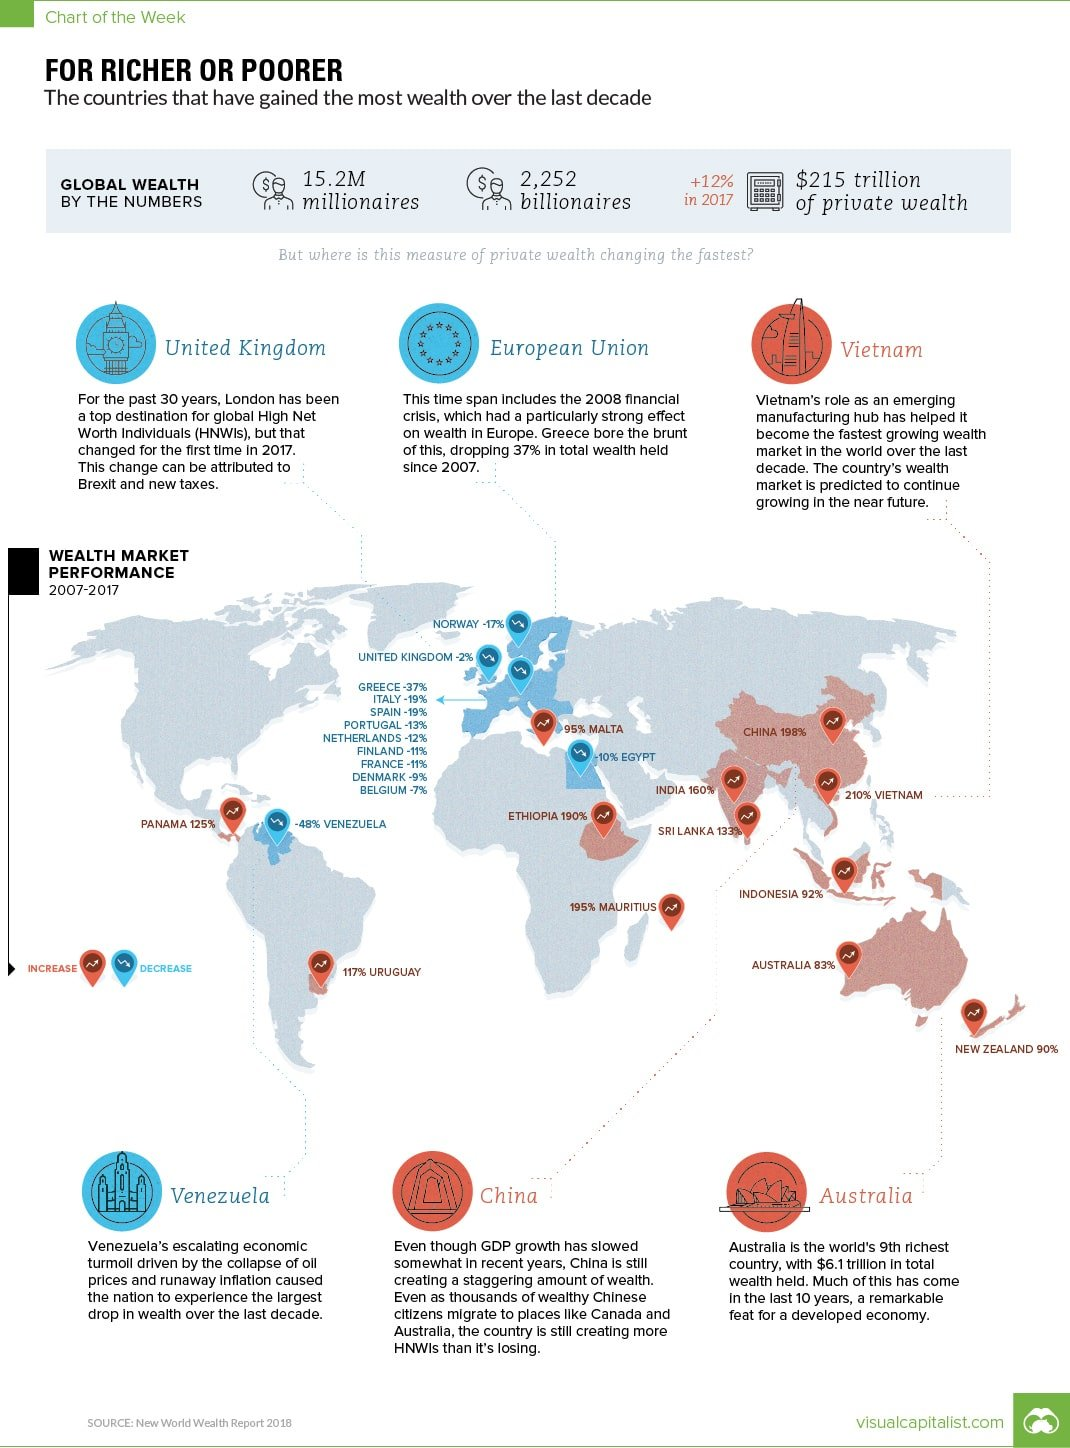 The most developed countries